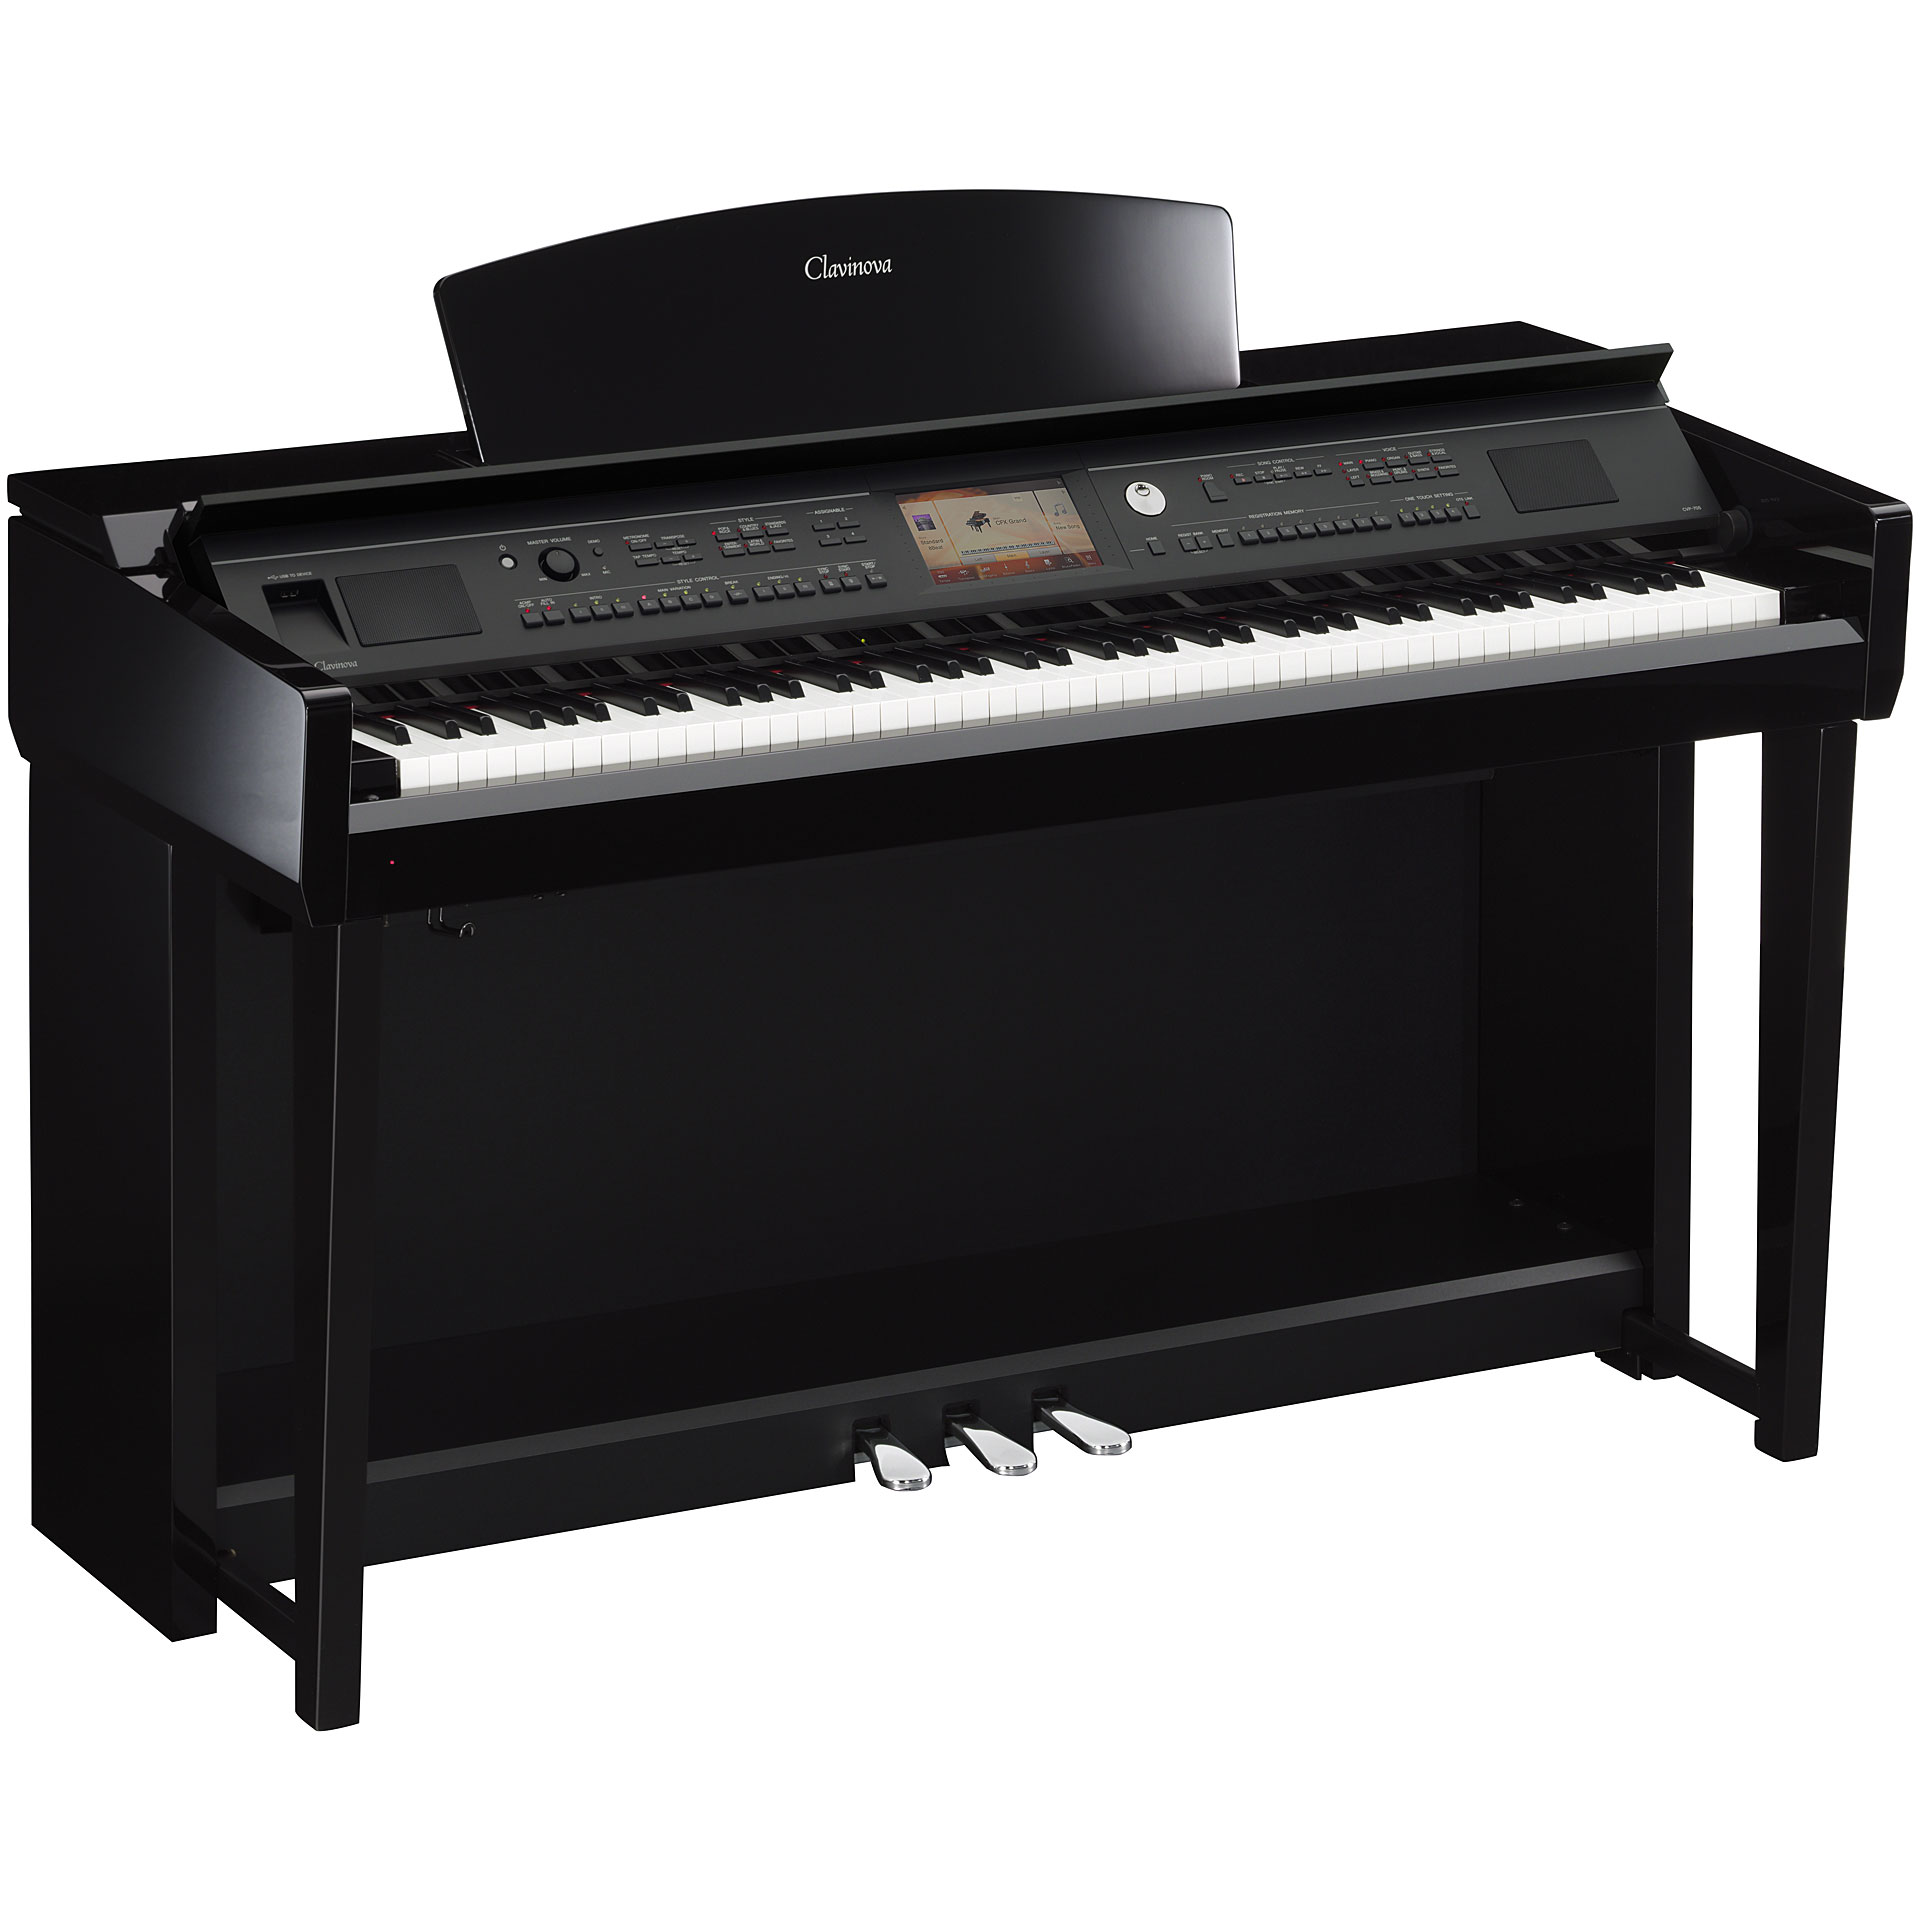 yamaha clavinova cvp 705 pe digital piano. Black Bedroom Furniture Sets. Home Design Ideas